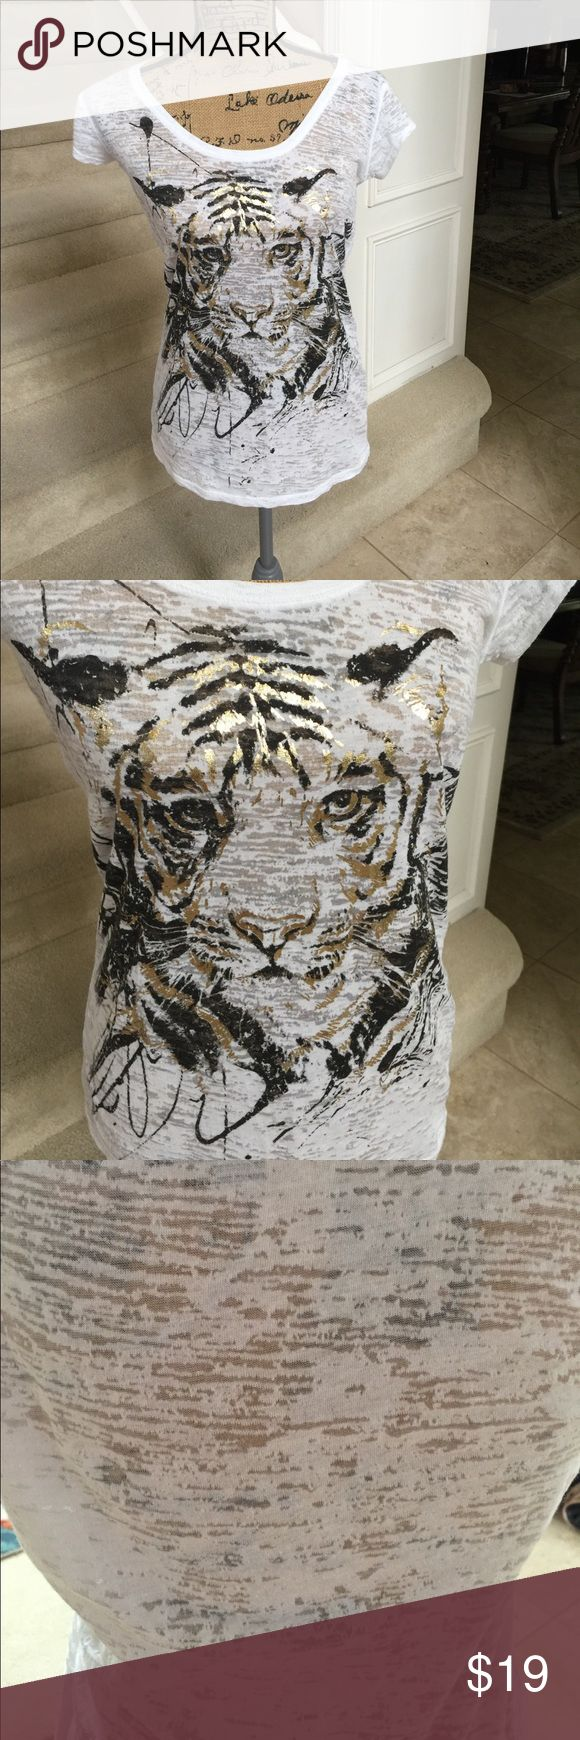 Awesome white gold foil tiger shirt Very cool. Light weight white withbalight burnout but with tan bra is totally wearable. Gold foil painted tiger. Size L. Worn maybe once. Bought from boutique. Fit my 36 c/d chest just fine. Tops Tees - Short Sleeve